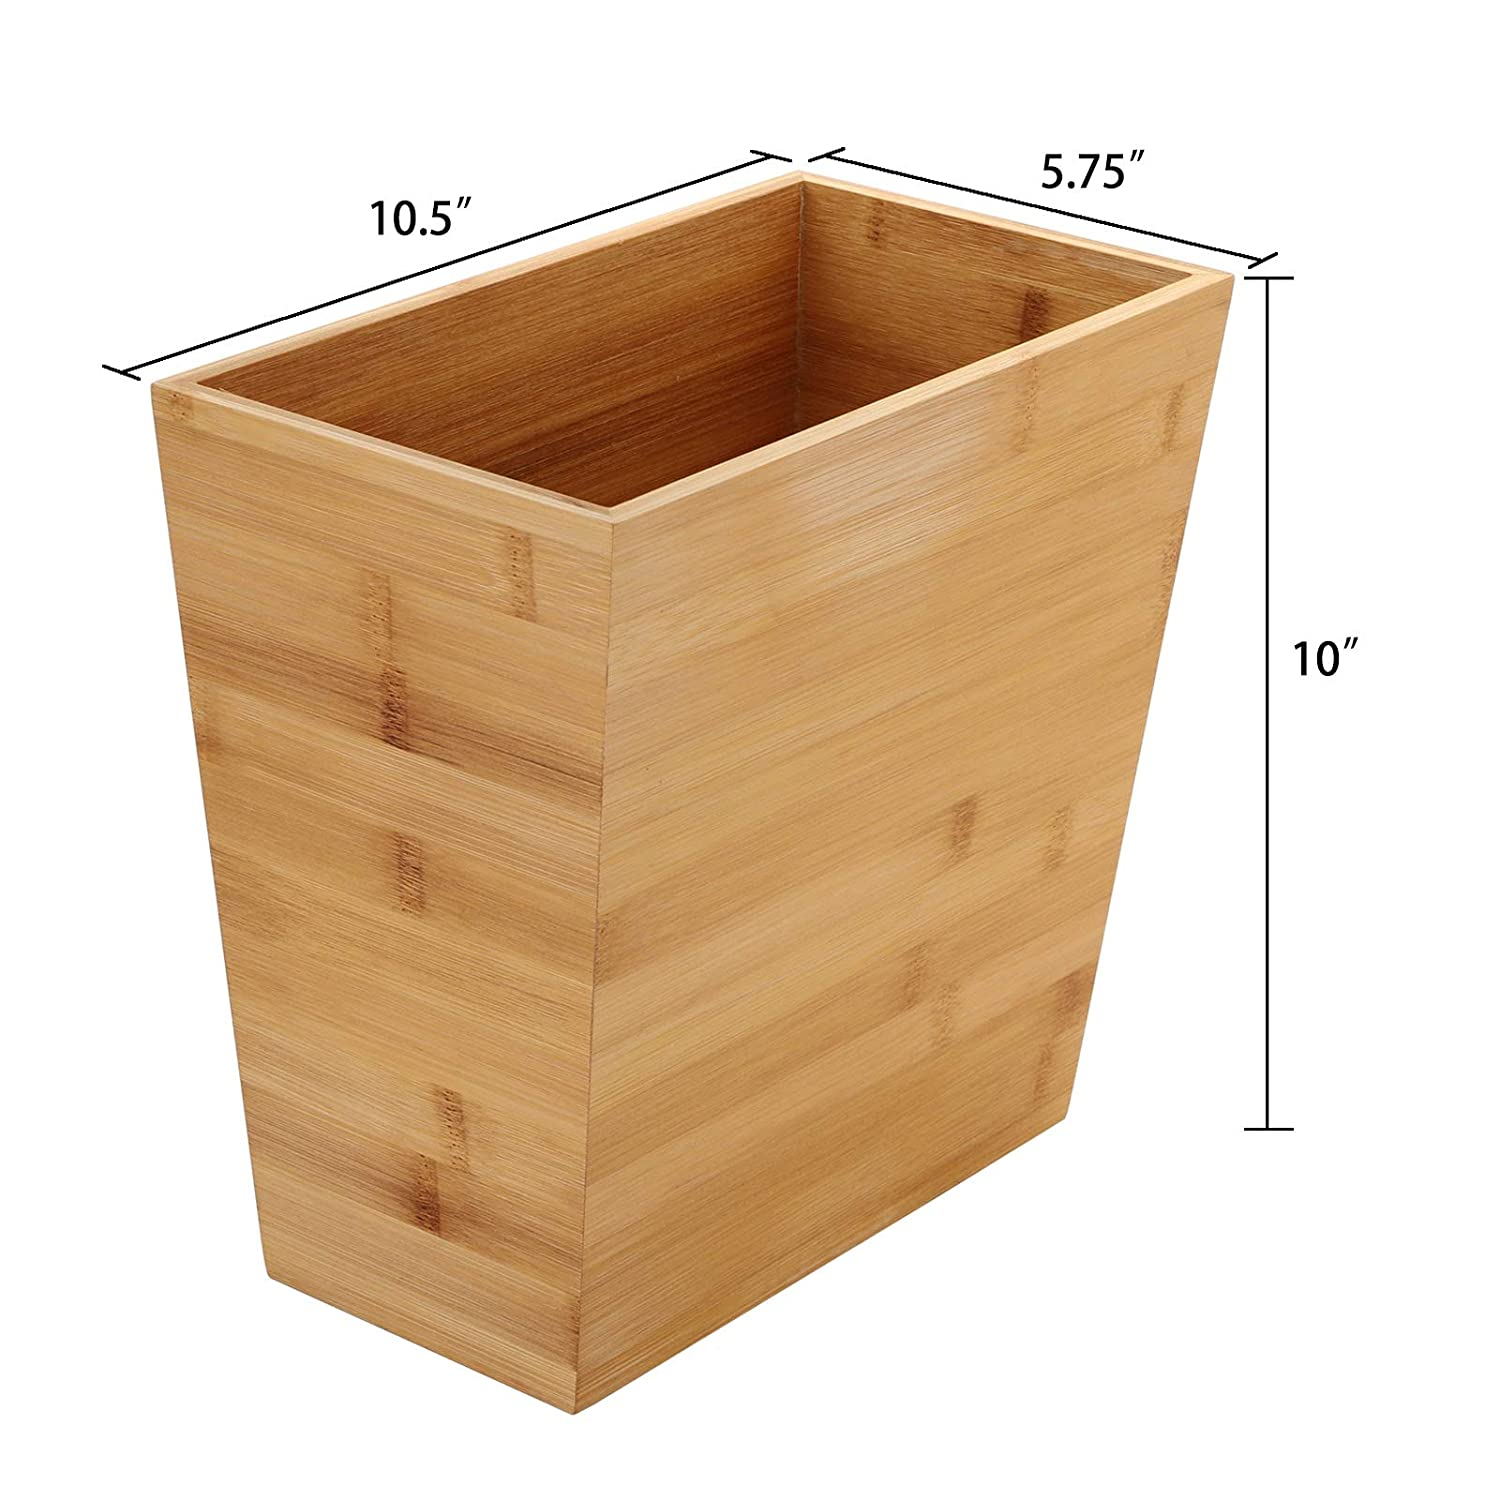 Bedroom 10.5 x 5.75 x 10 Rectangular Narrow Trash Can Wastebasket Waste Bin Garbage Can for Bathroom TOPZEA Bamboo Waste Basket Office and Home